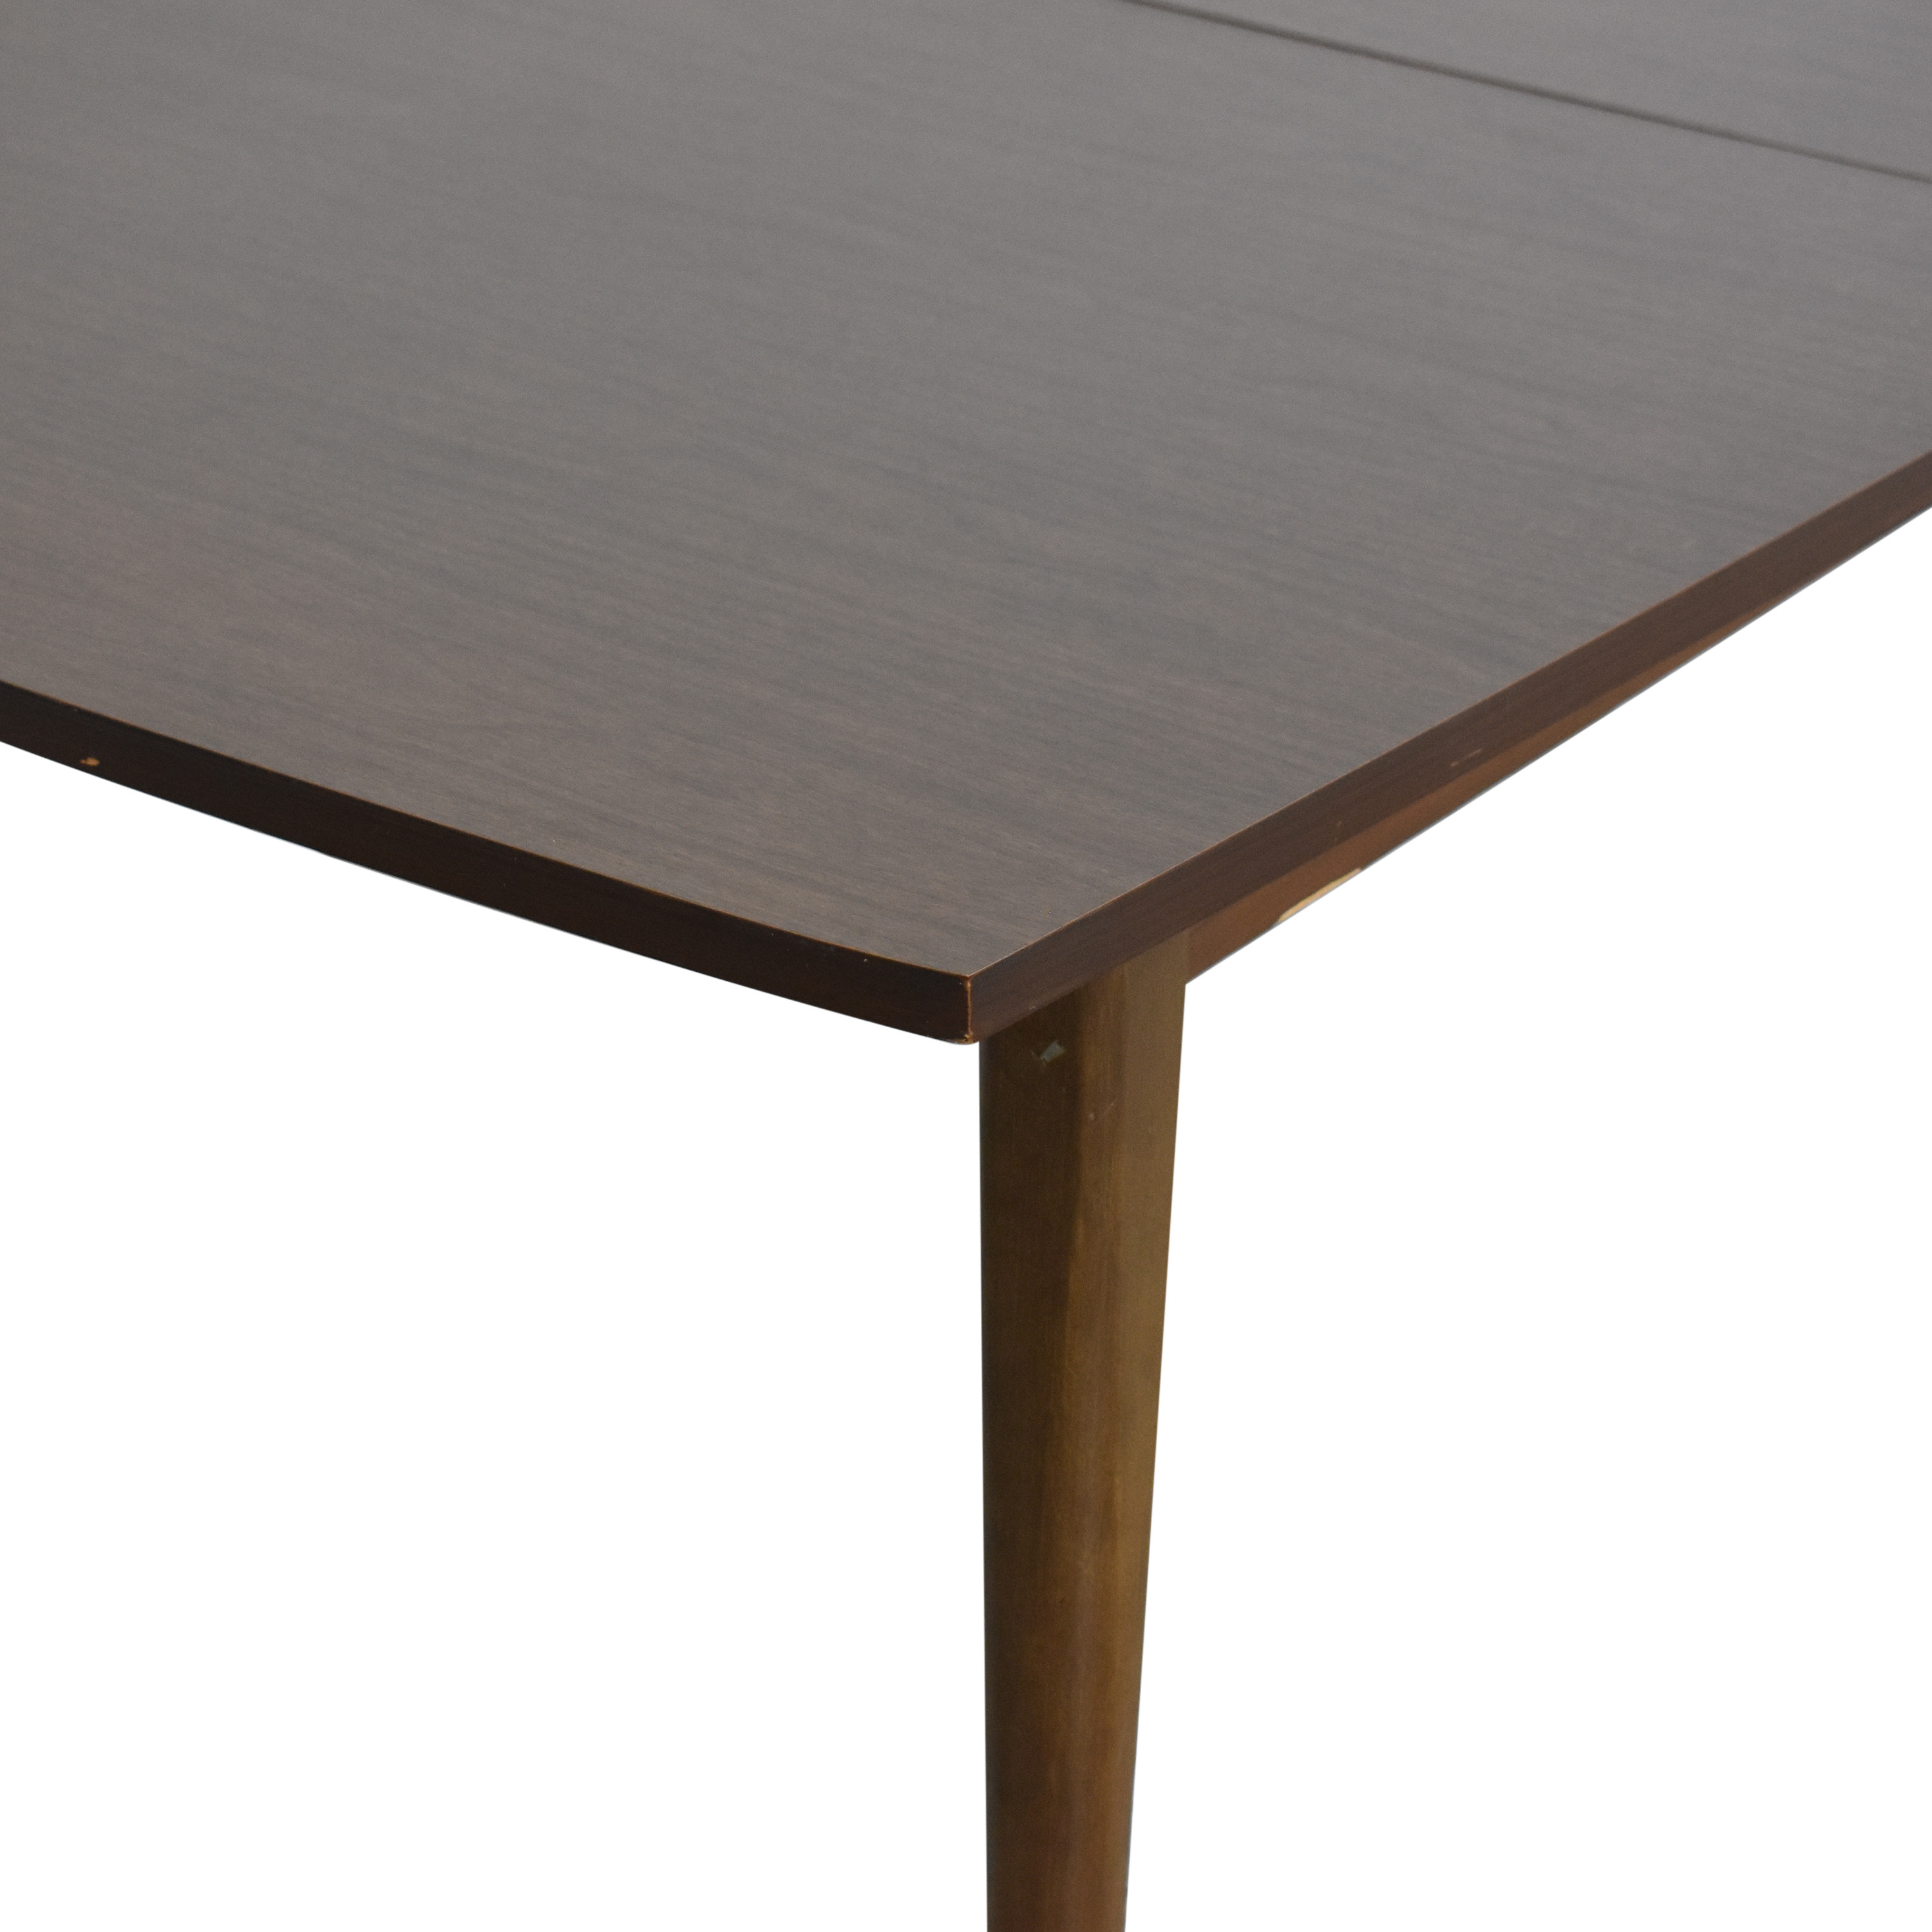 buy  Mid Century Extendable Dining Room Table online